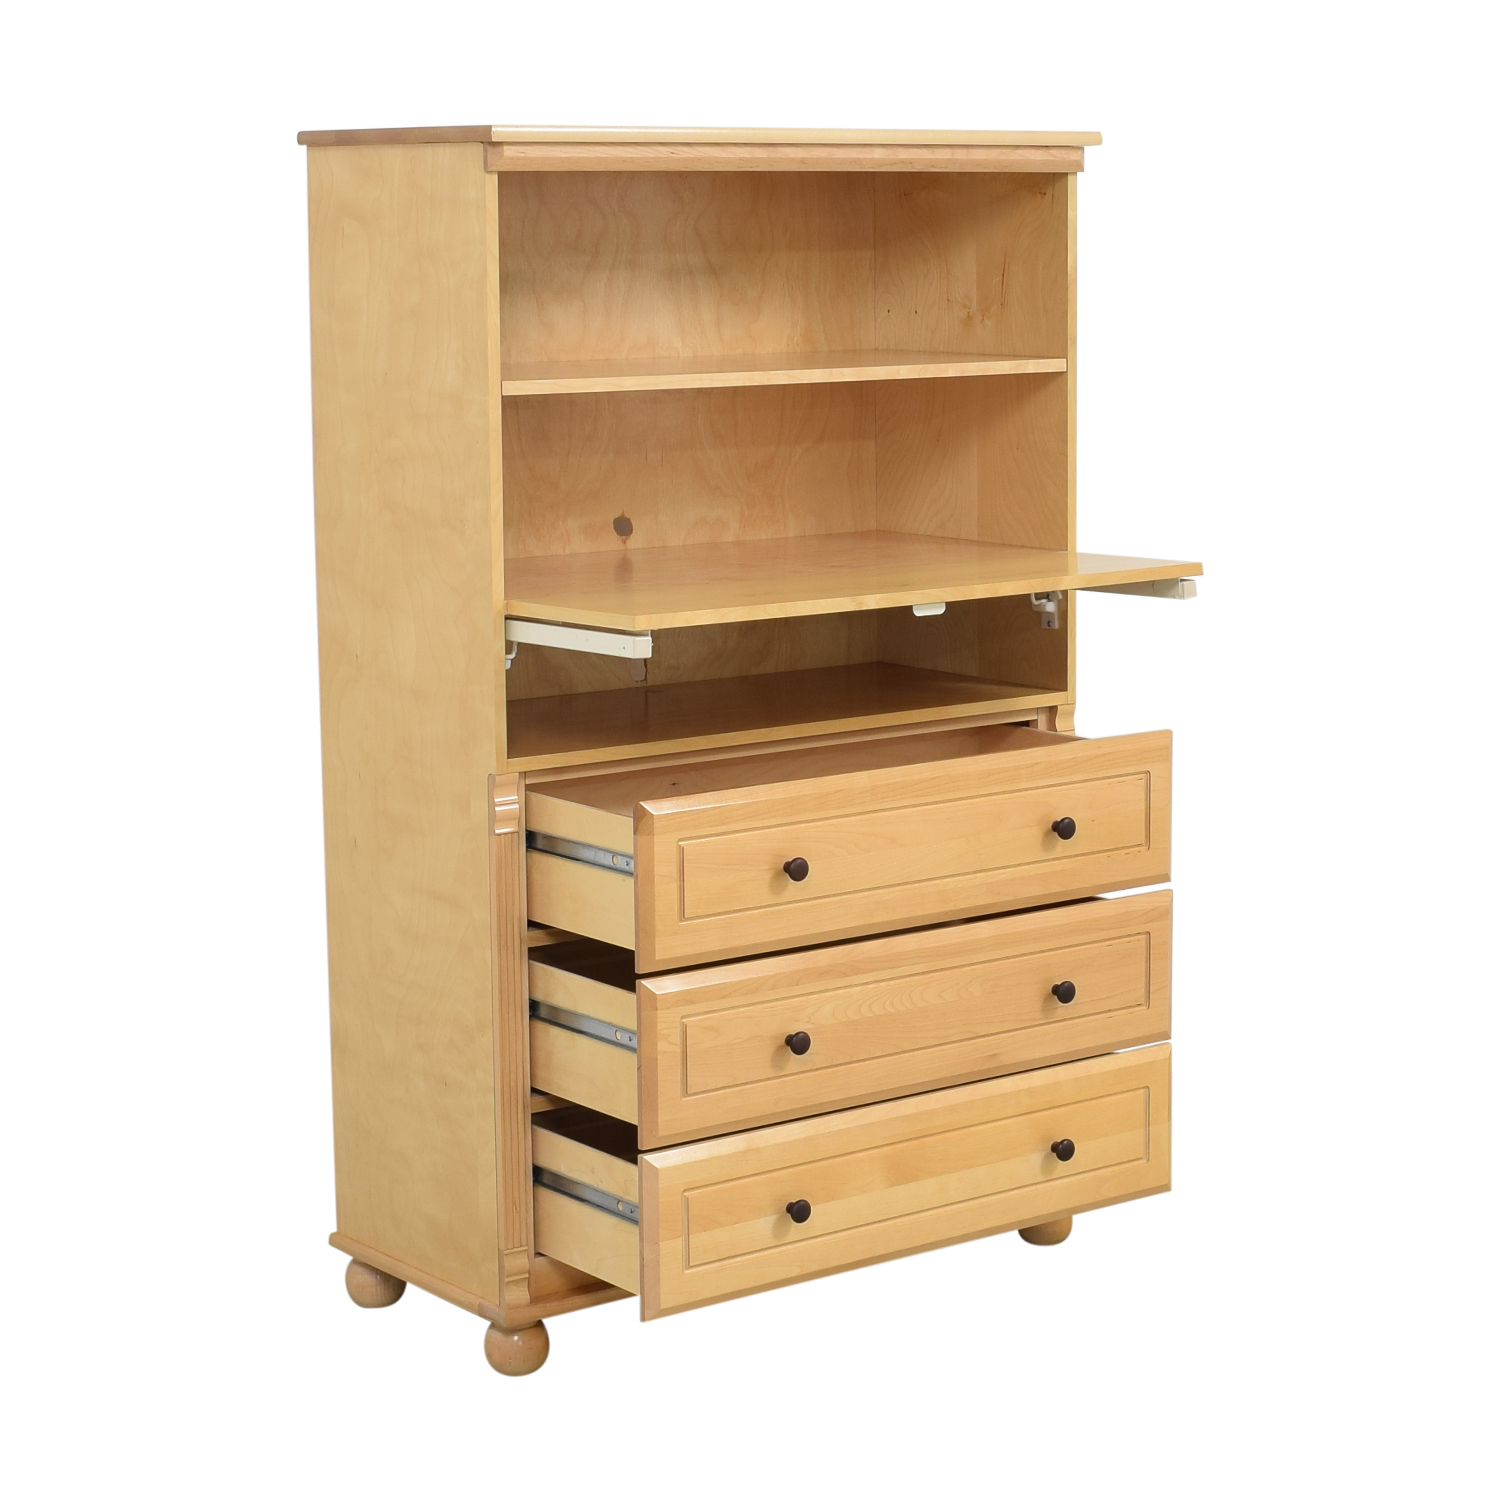 Bellini Bellini Jessica Dresser with Changing Table Dressers